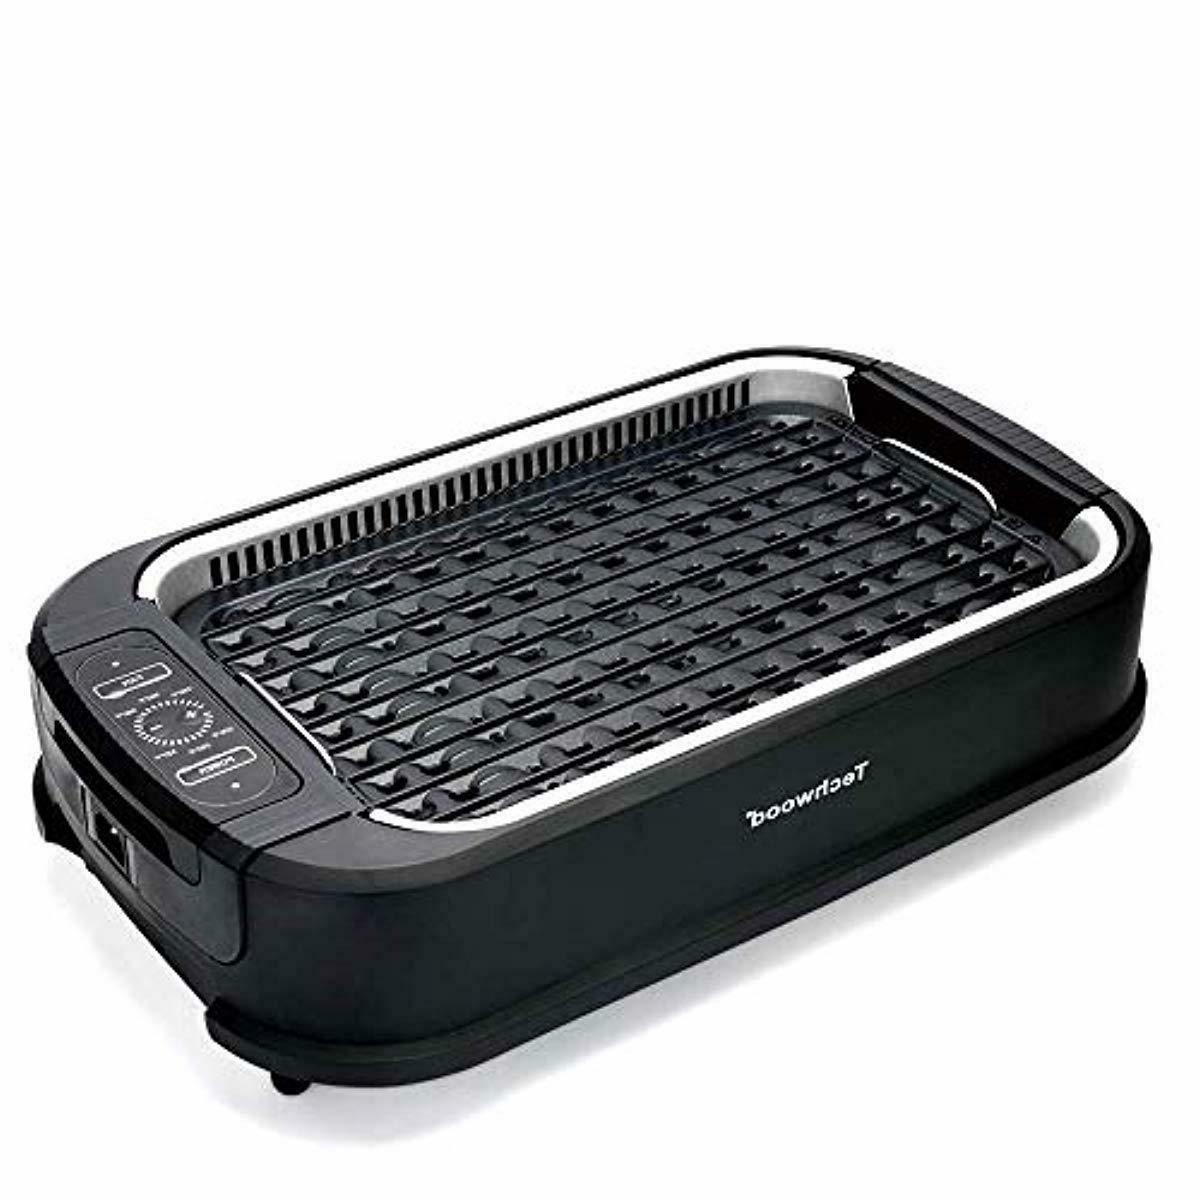 Techwood Smokeless Grill with Technology .T